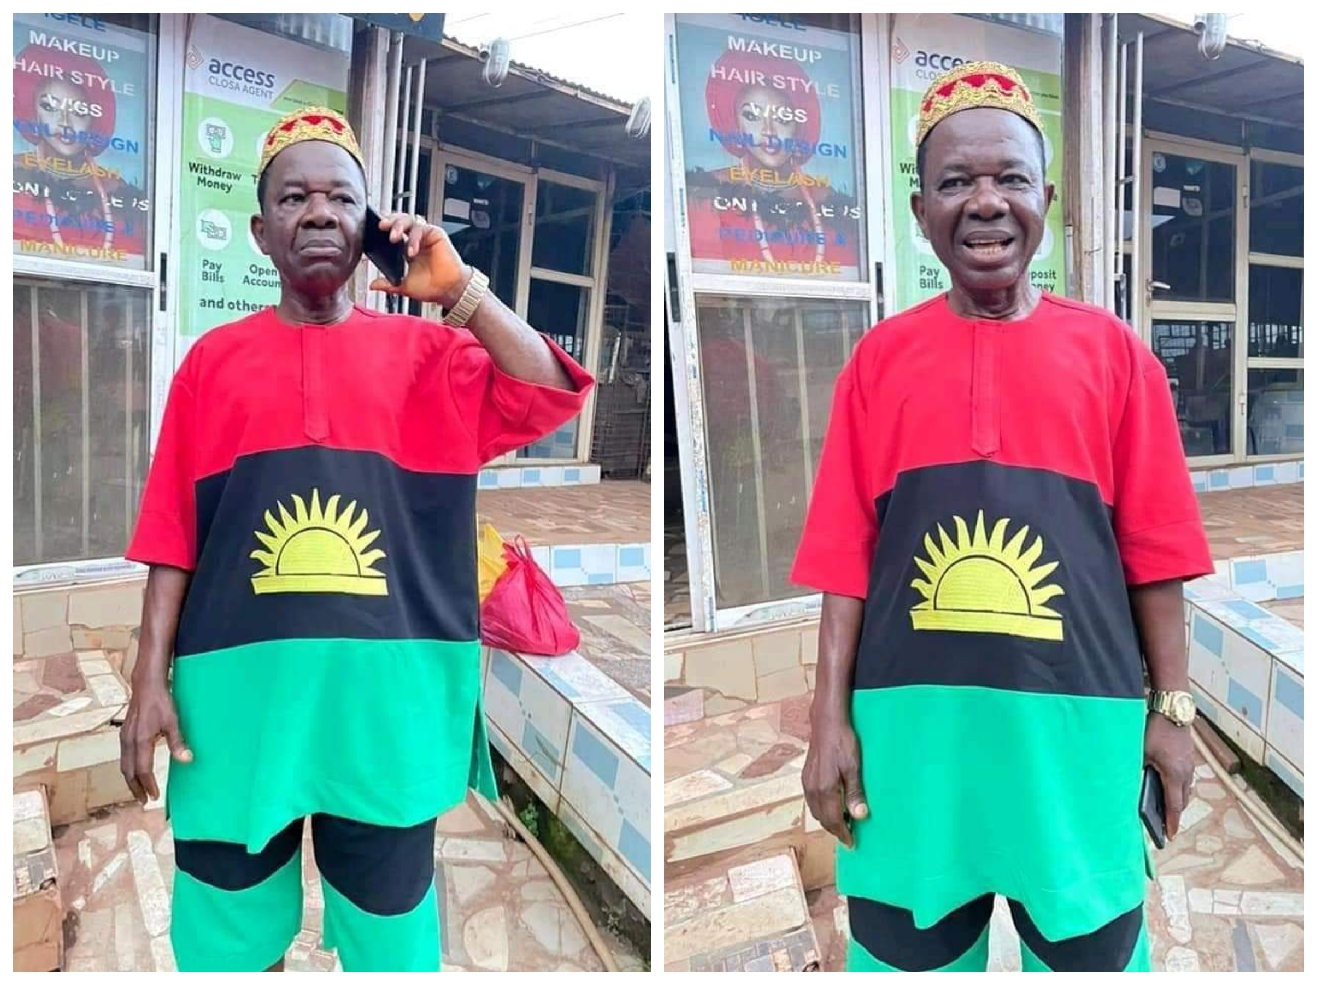 Nollywood actor, Chinwetalu Agu steps out in Biafra outfit says, no amount of force can crush the will of the people